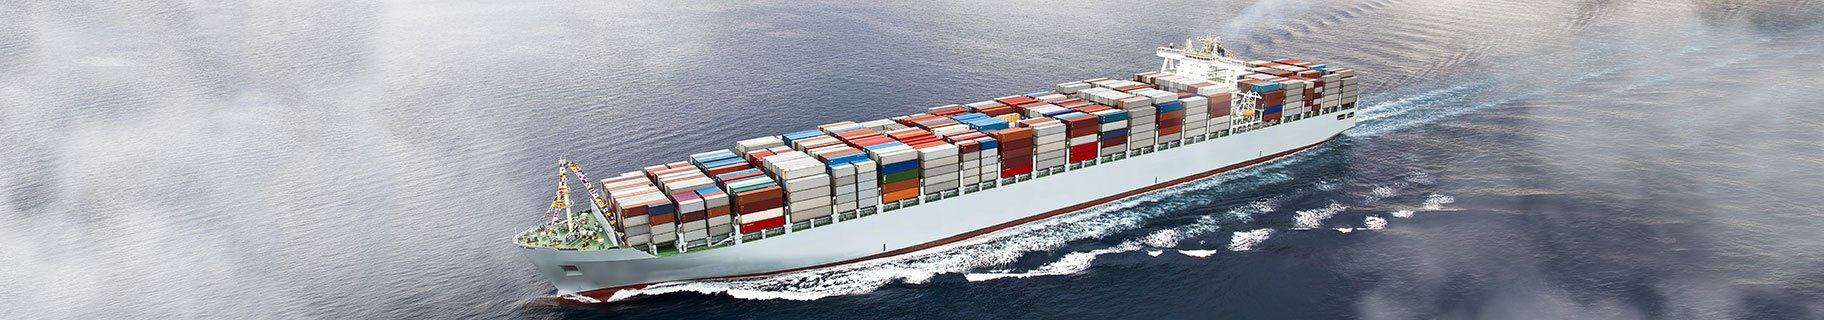 Image of a cargo ship